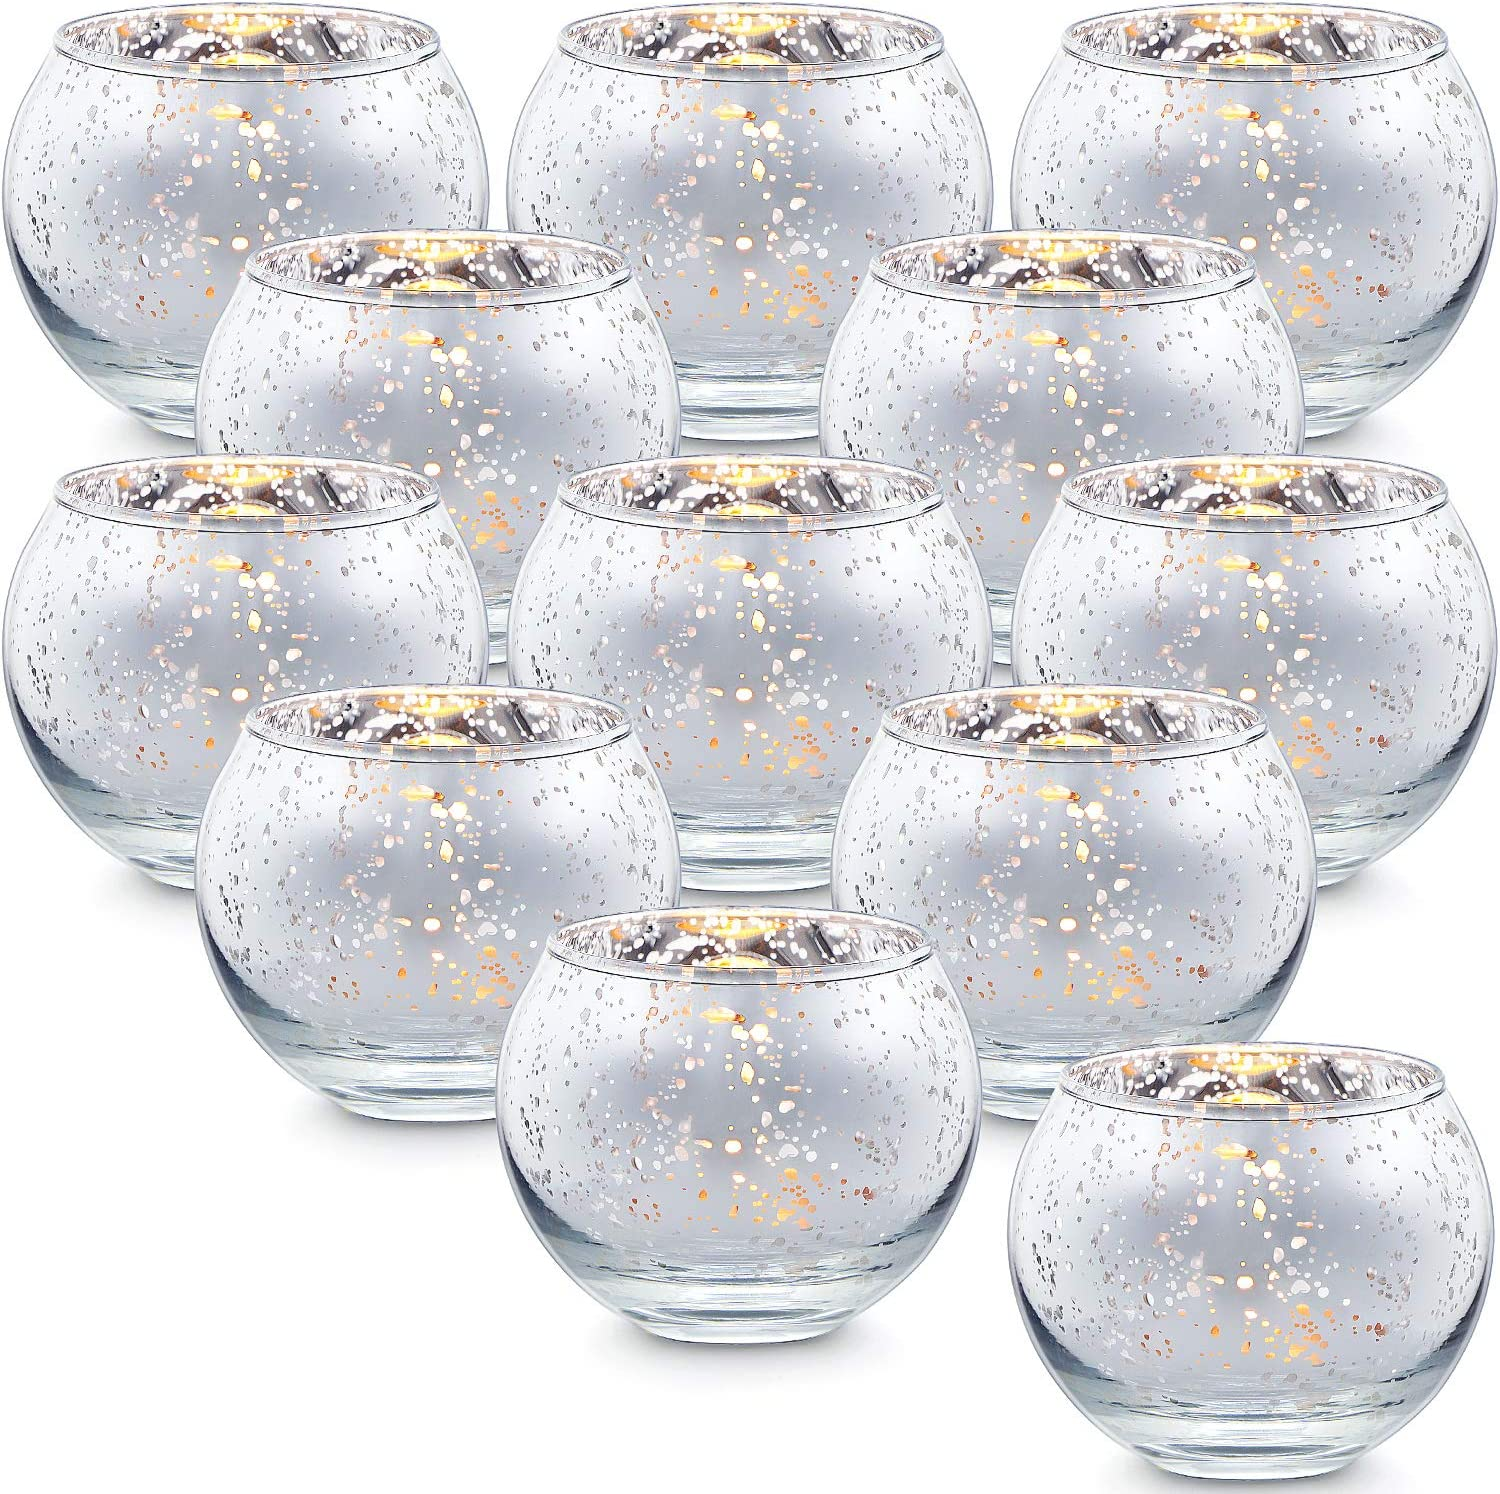 Lamorgift Silver Votive Candle Holders Set of 12 - Mercury Glass Votives Candle Holder - Tealight Candle Holder for Home Decor and Weddings/ Parties Table Centerpieces